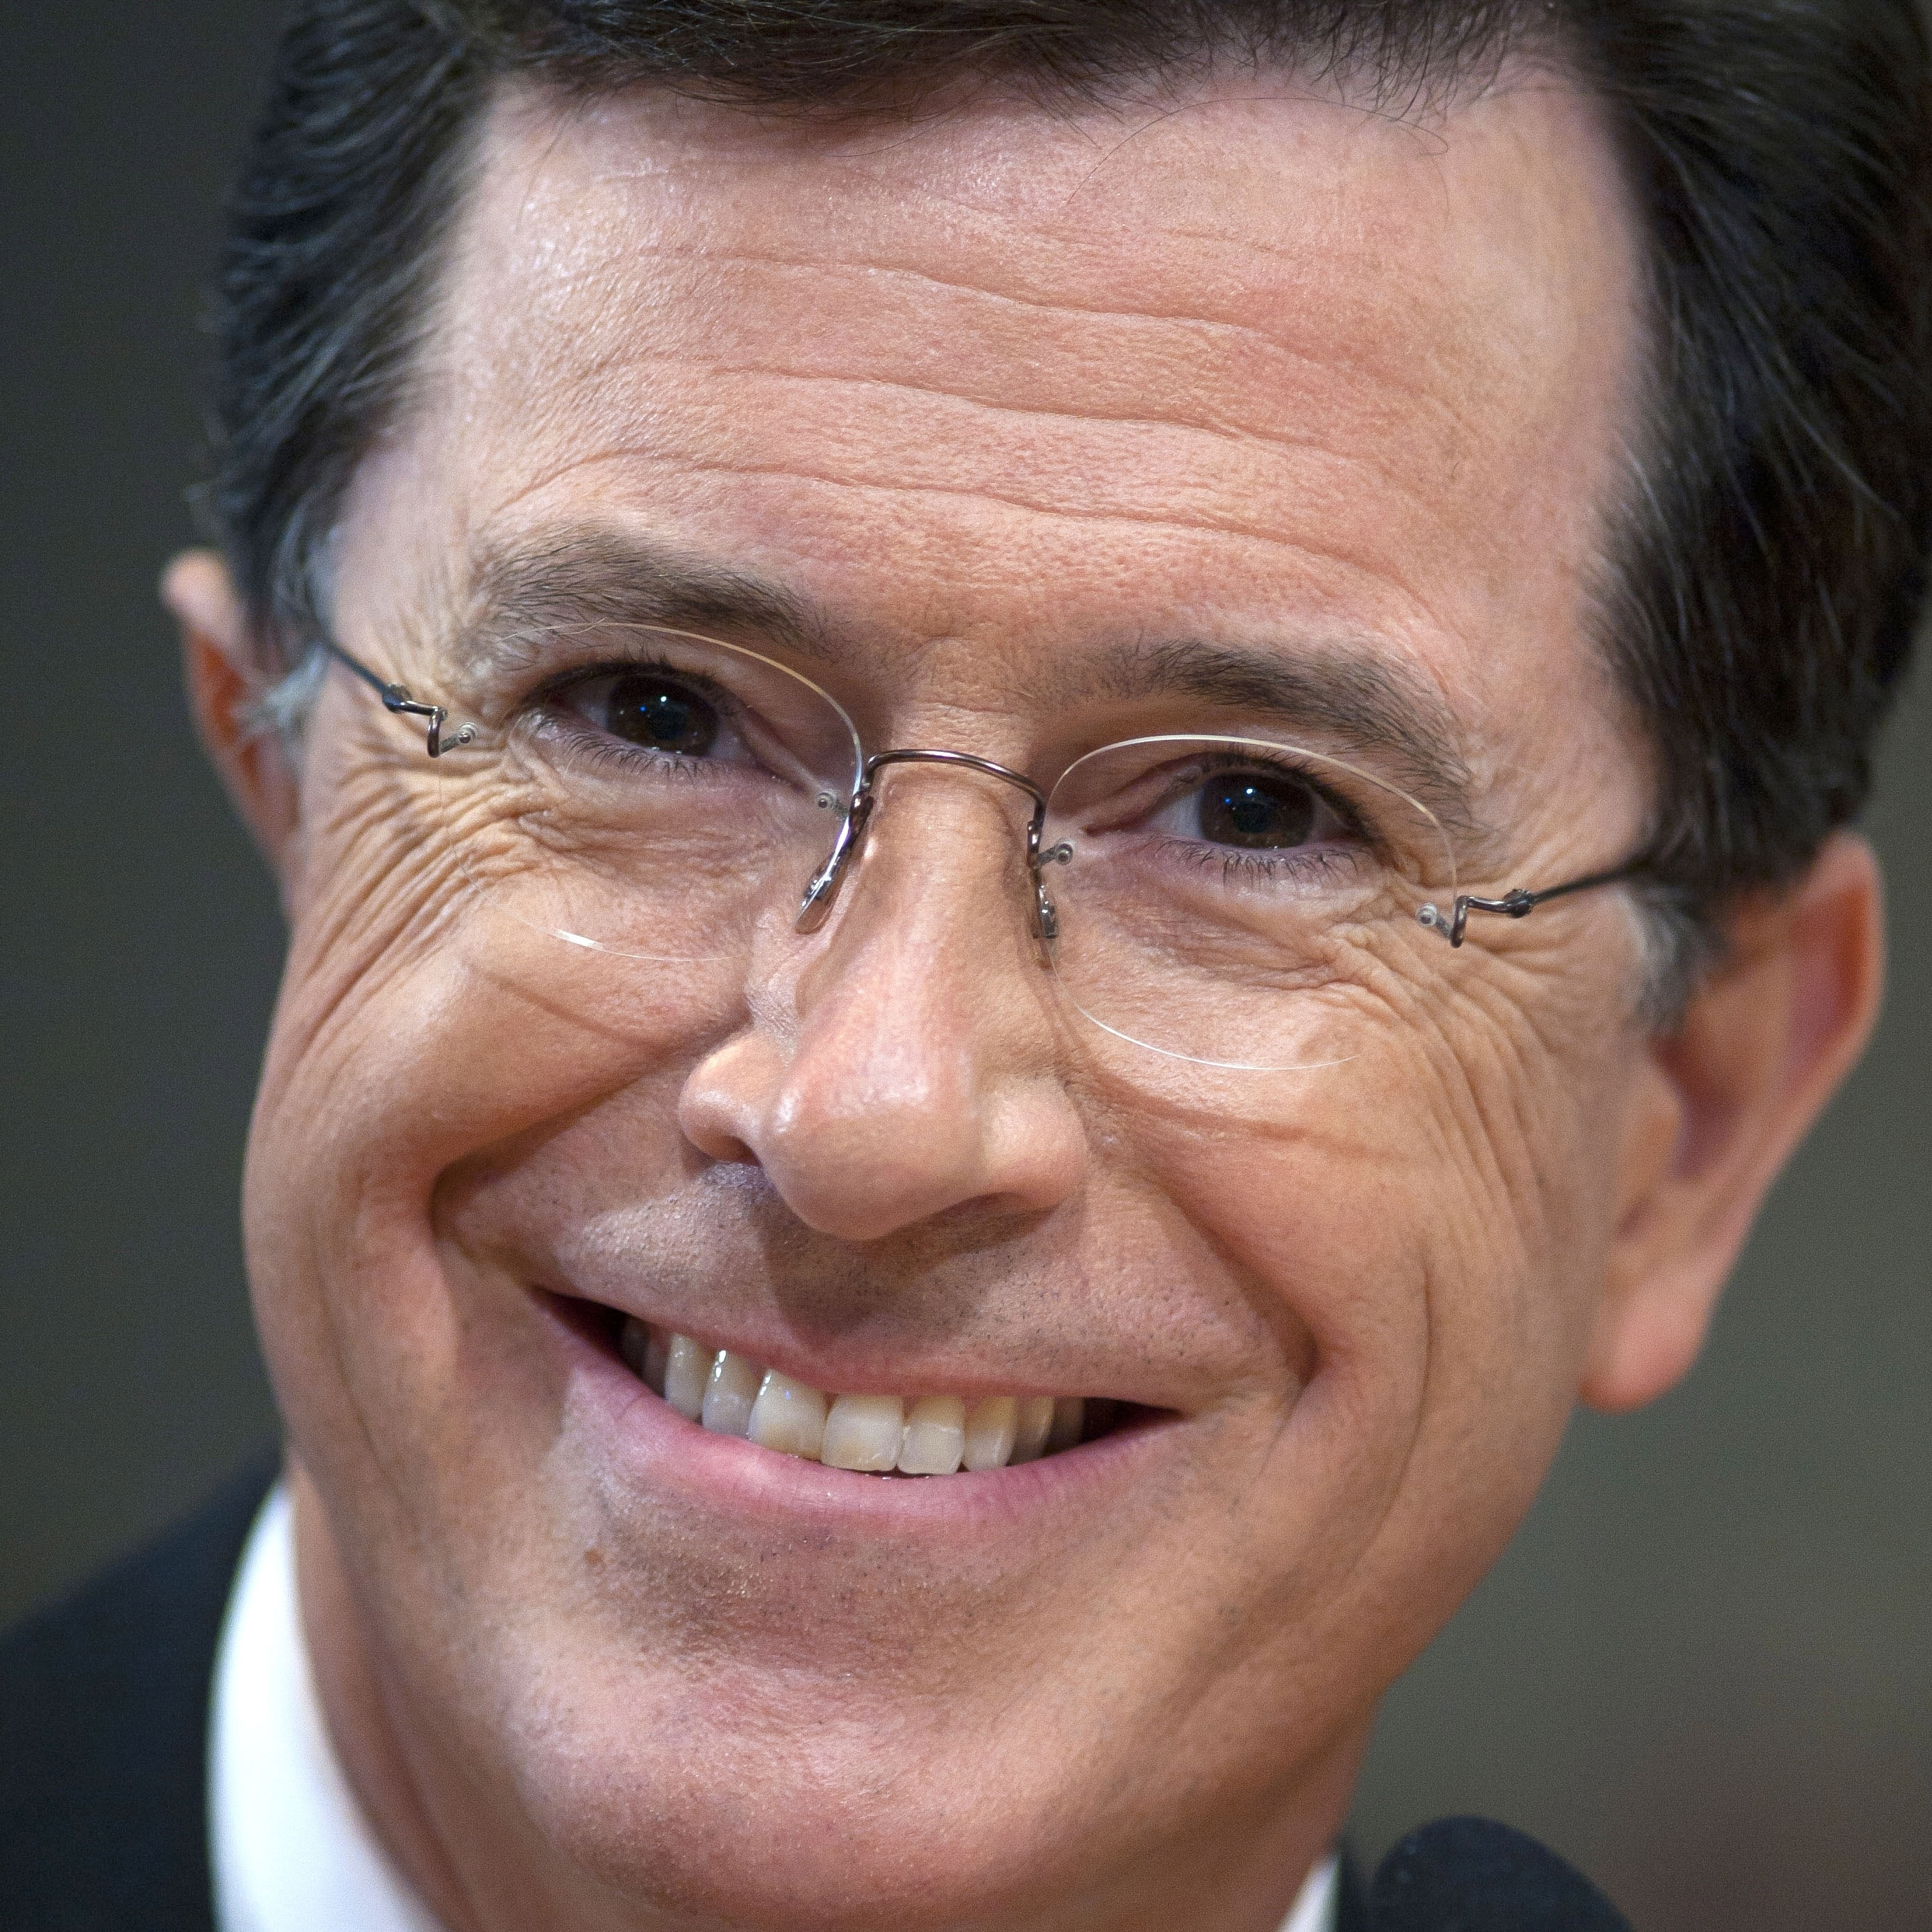 Stephen Colbert is also the author of I Am America (And So Can You!).